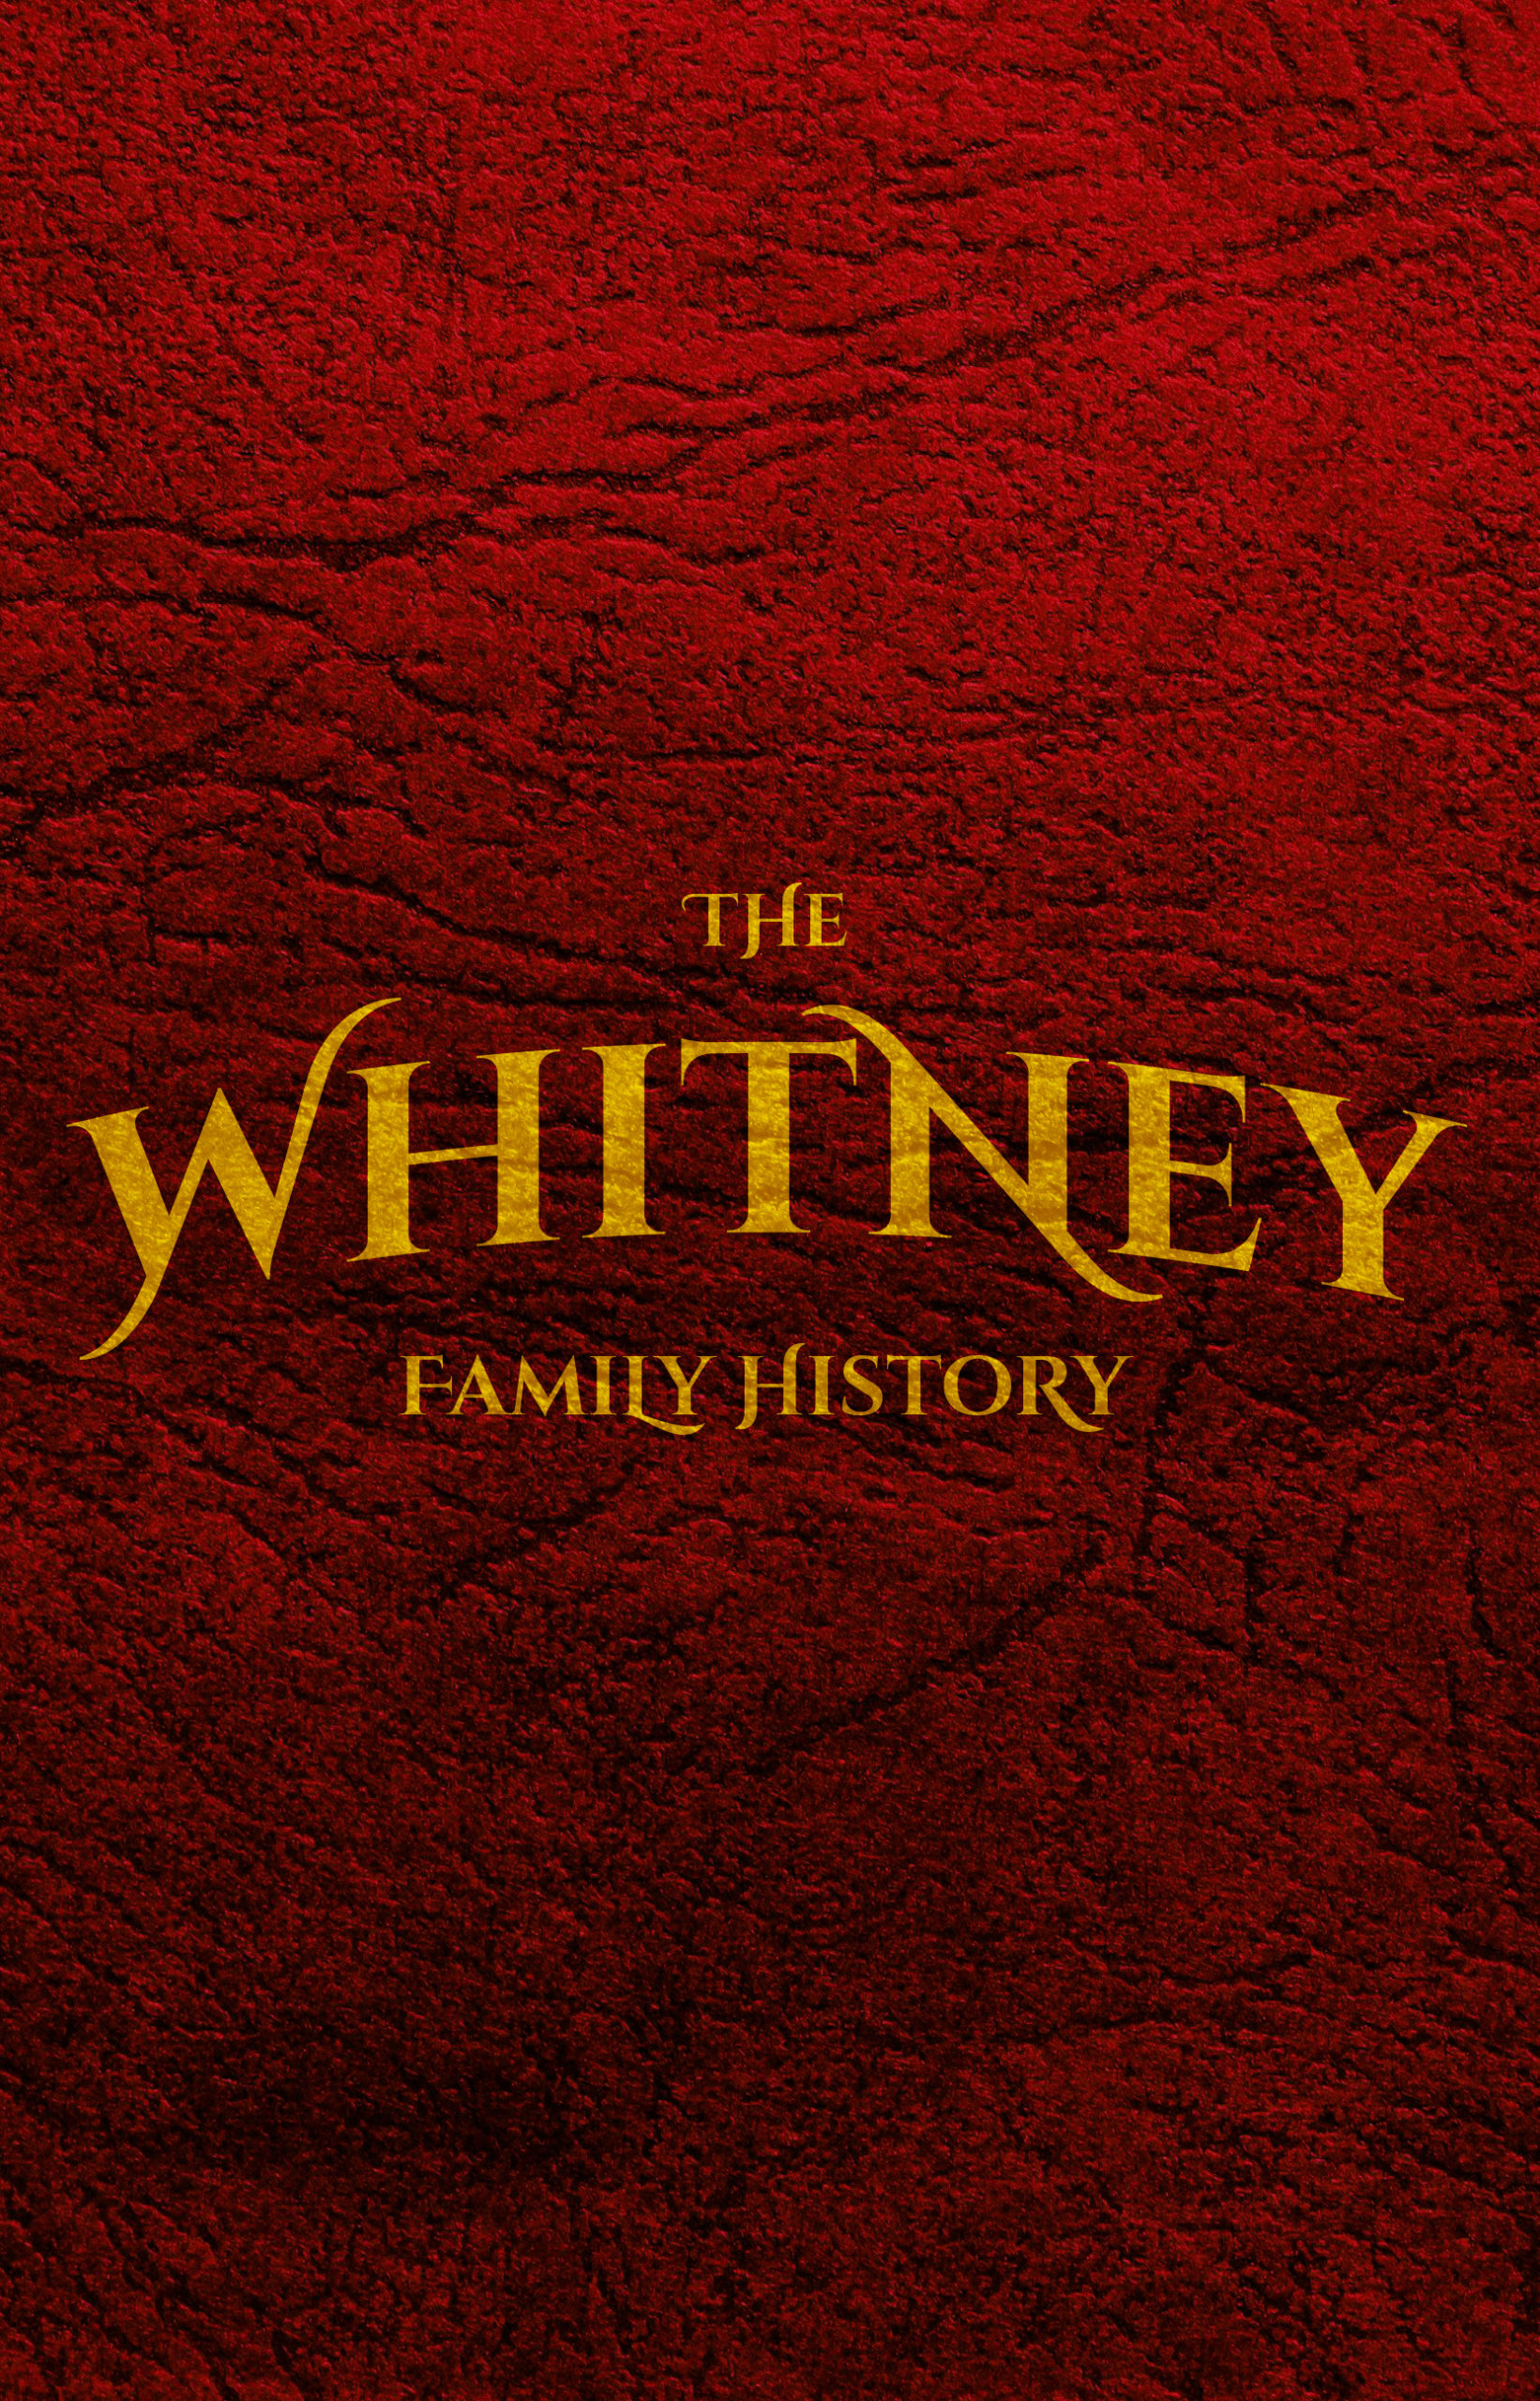 WhitneyCover2